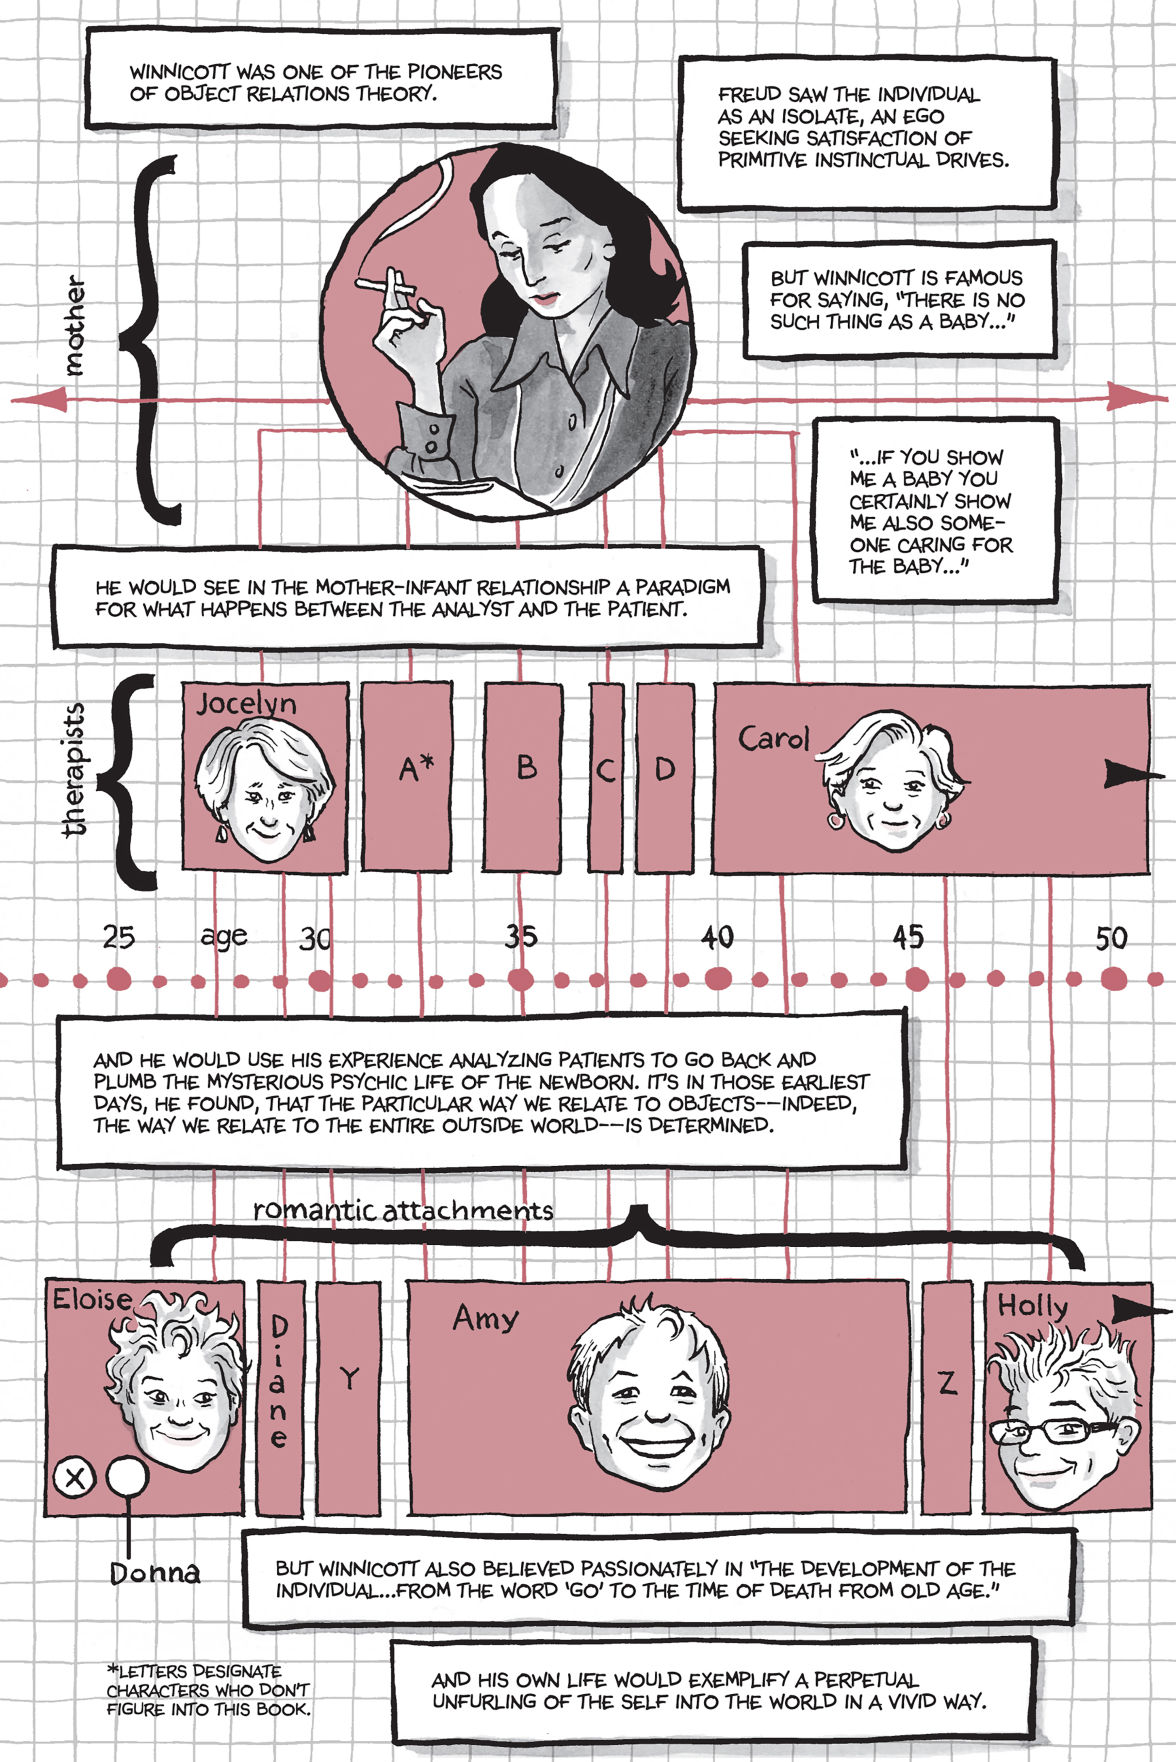 Self-Confessed: Alison Bechdel: 'Inappropriately Intimate ...